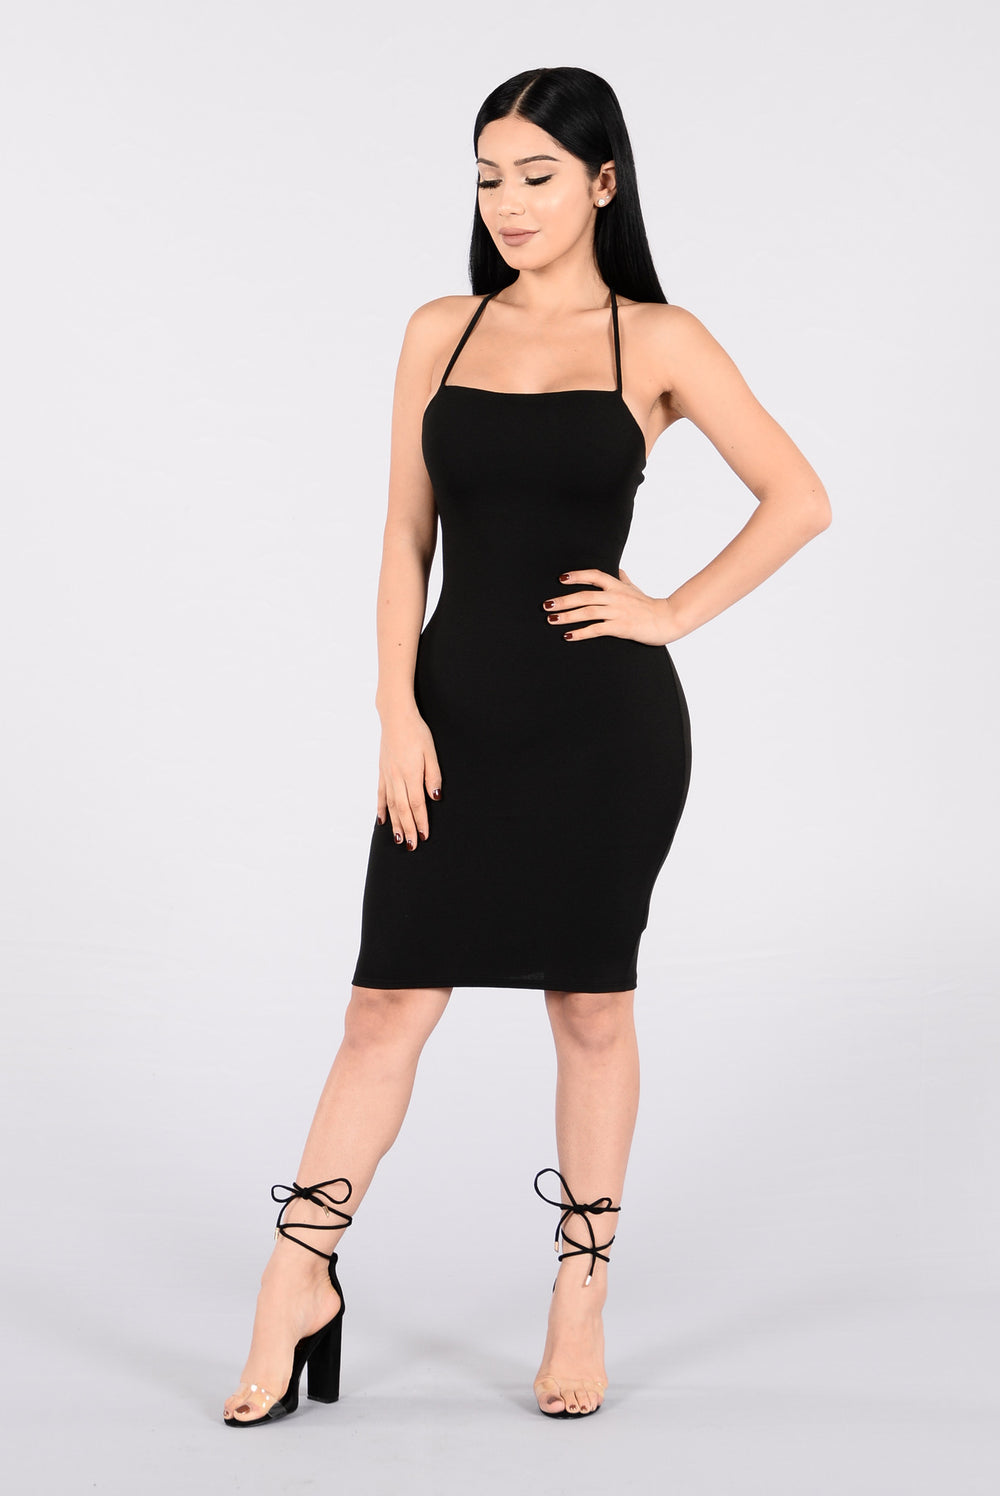 Face The Lace Dress - Black